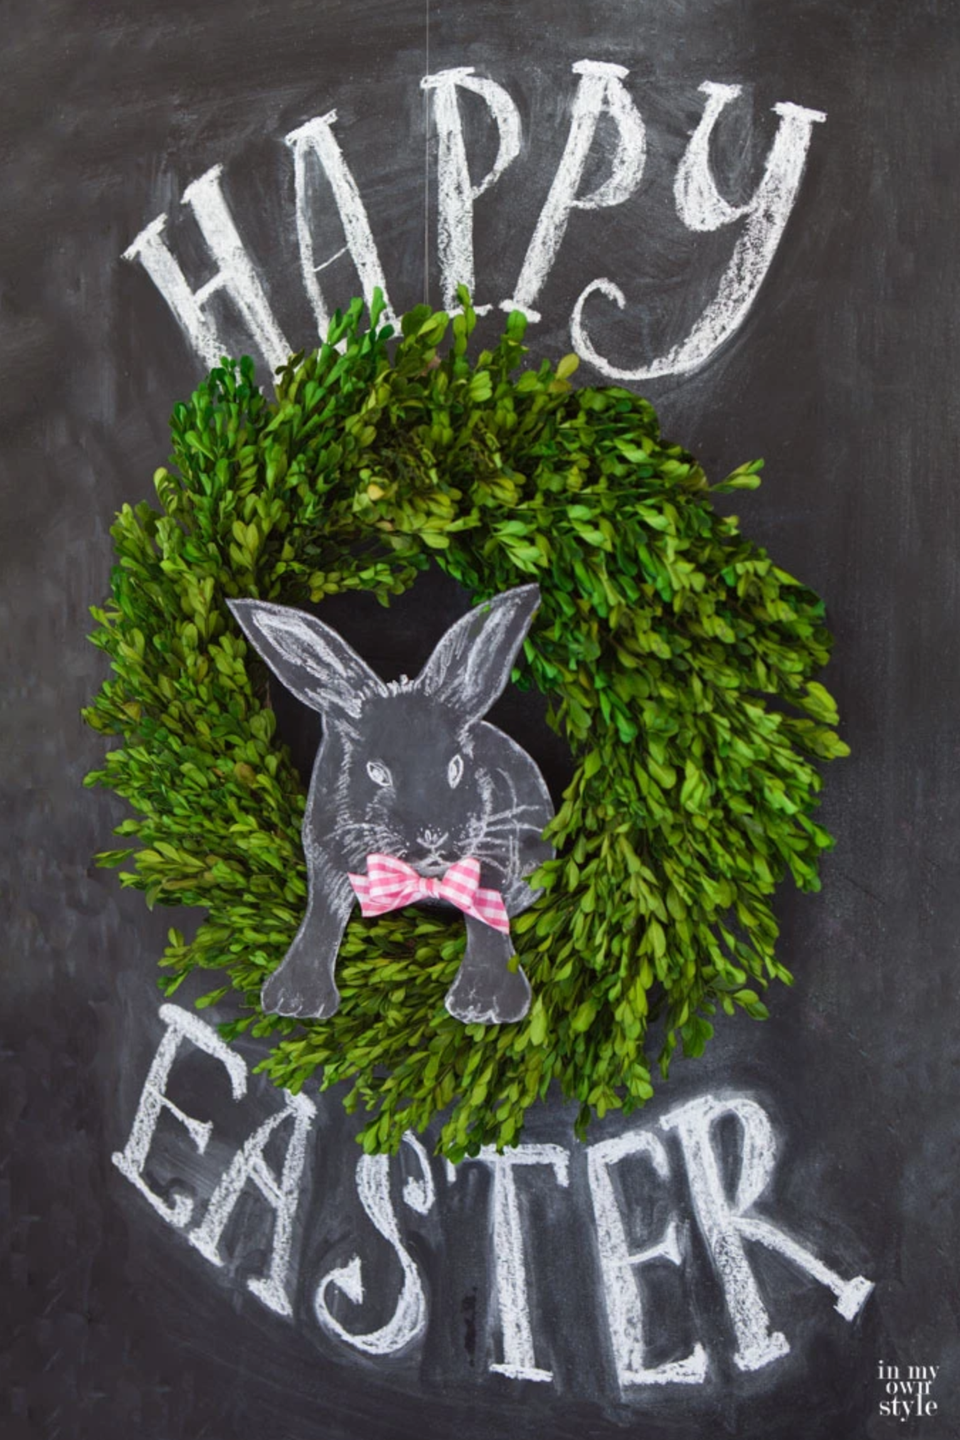 """<p>With a chalkboard and a boxwood wreath, you can make it look as though a chalkboard bunny is jumping out, complete with a gingham bow. </p><p><strong>Get the tutorial at <a href=""""https://inmyownstyle.com/3d-easter-chalkboard-art.html"""" rel=""""nofollow noopener"""" target=""""_blank"""" data-ylk=""""slk:In My Own Style"""" class=""""link rapid-noclick-resp"""">In My Own Style</a>.</strong></p><p><a class=""""link rapid-noclick-resp"""" href=""""https://go.redirectingat.com?id=74968X1596630&url=https%3A%2F%2Fwww.walmart.com%2Fip%2FEclipse-Black-Color-Card-Stock-Paper-65lb-8-5-X-11-Inches-50-Sheets%2F591851177&sref=https%3A%2F%2Fwww.thepioneerwoman.com%2Fhome-lifestyle%2Fcrafts-diy%2Fg35698457%2Fdiy-easter-wreath-ideas%2F"""" rel=""""nofollow noopener"""" target=""""_blank"""" data-ylk=""""slk:SHOP BLACK CARD STOCK"""">SHOP BLACK CARD STOCK</a></p>"""